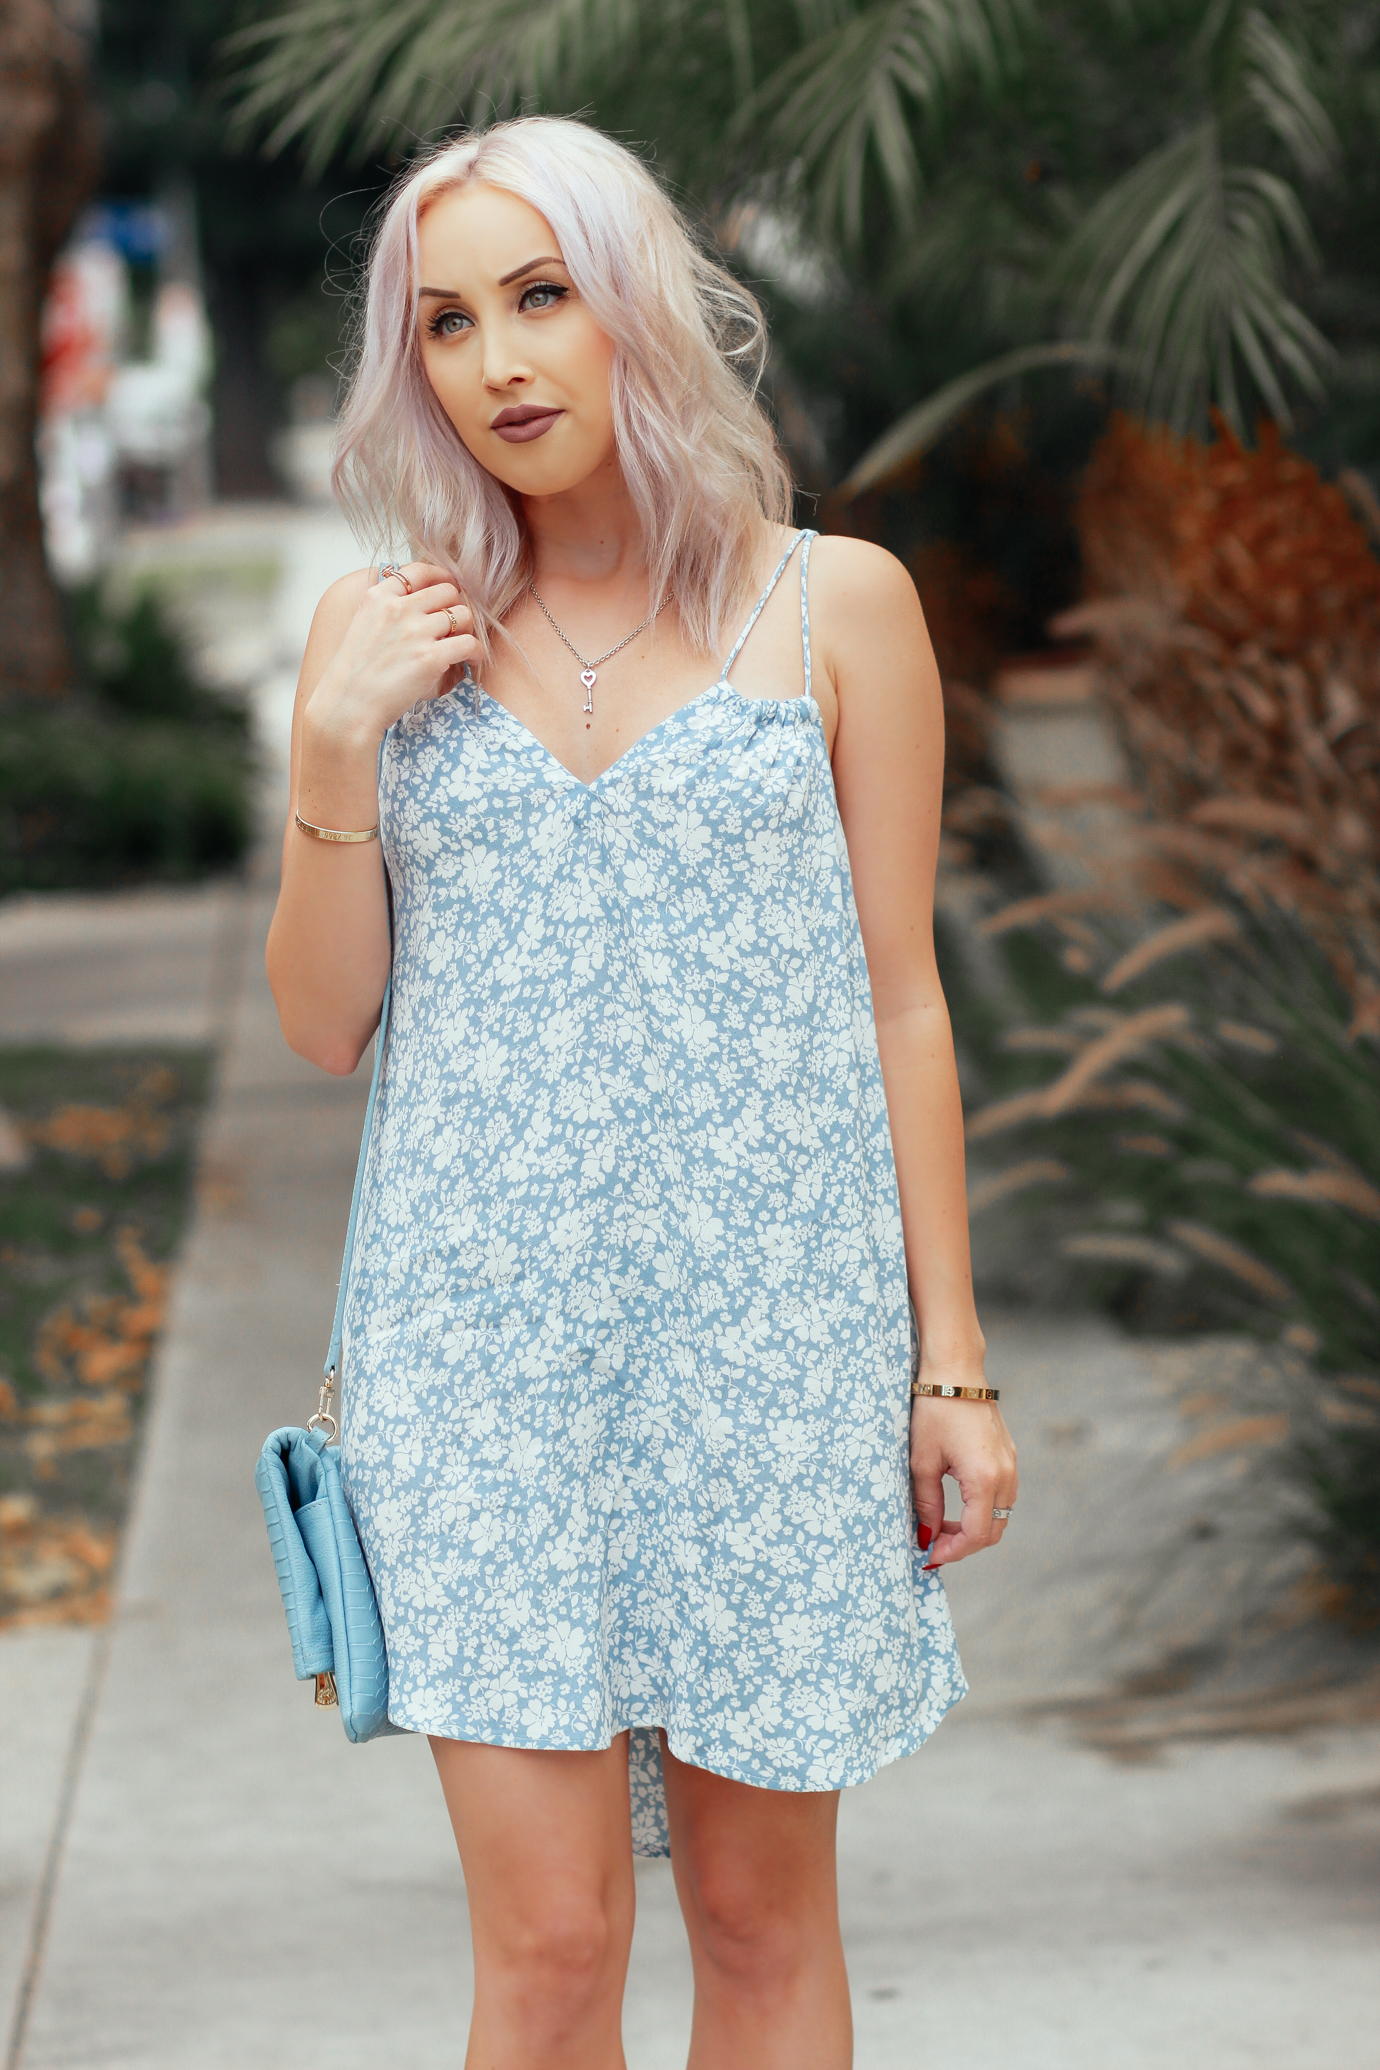 Blondie in the City | The Perfect Summer Dress | Blue and White Flowy Summer Dress